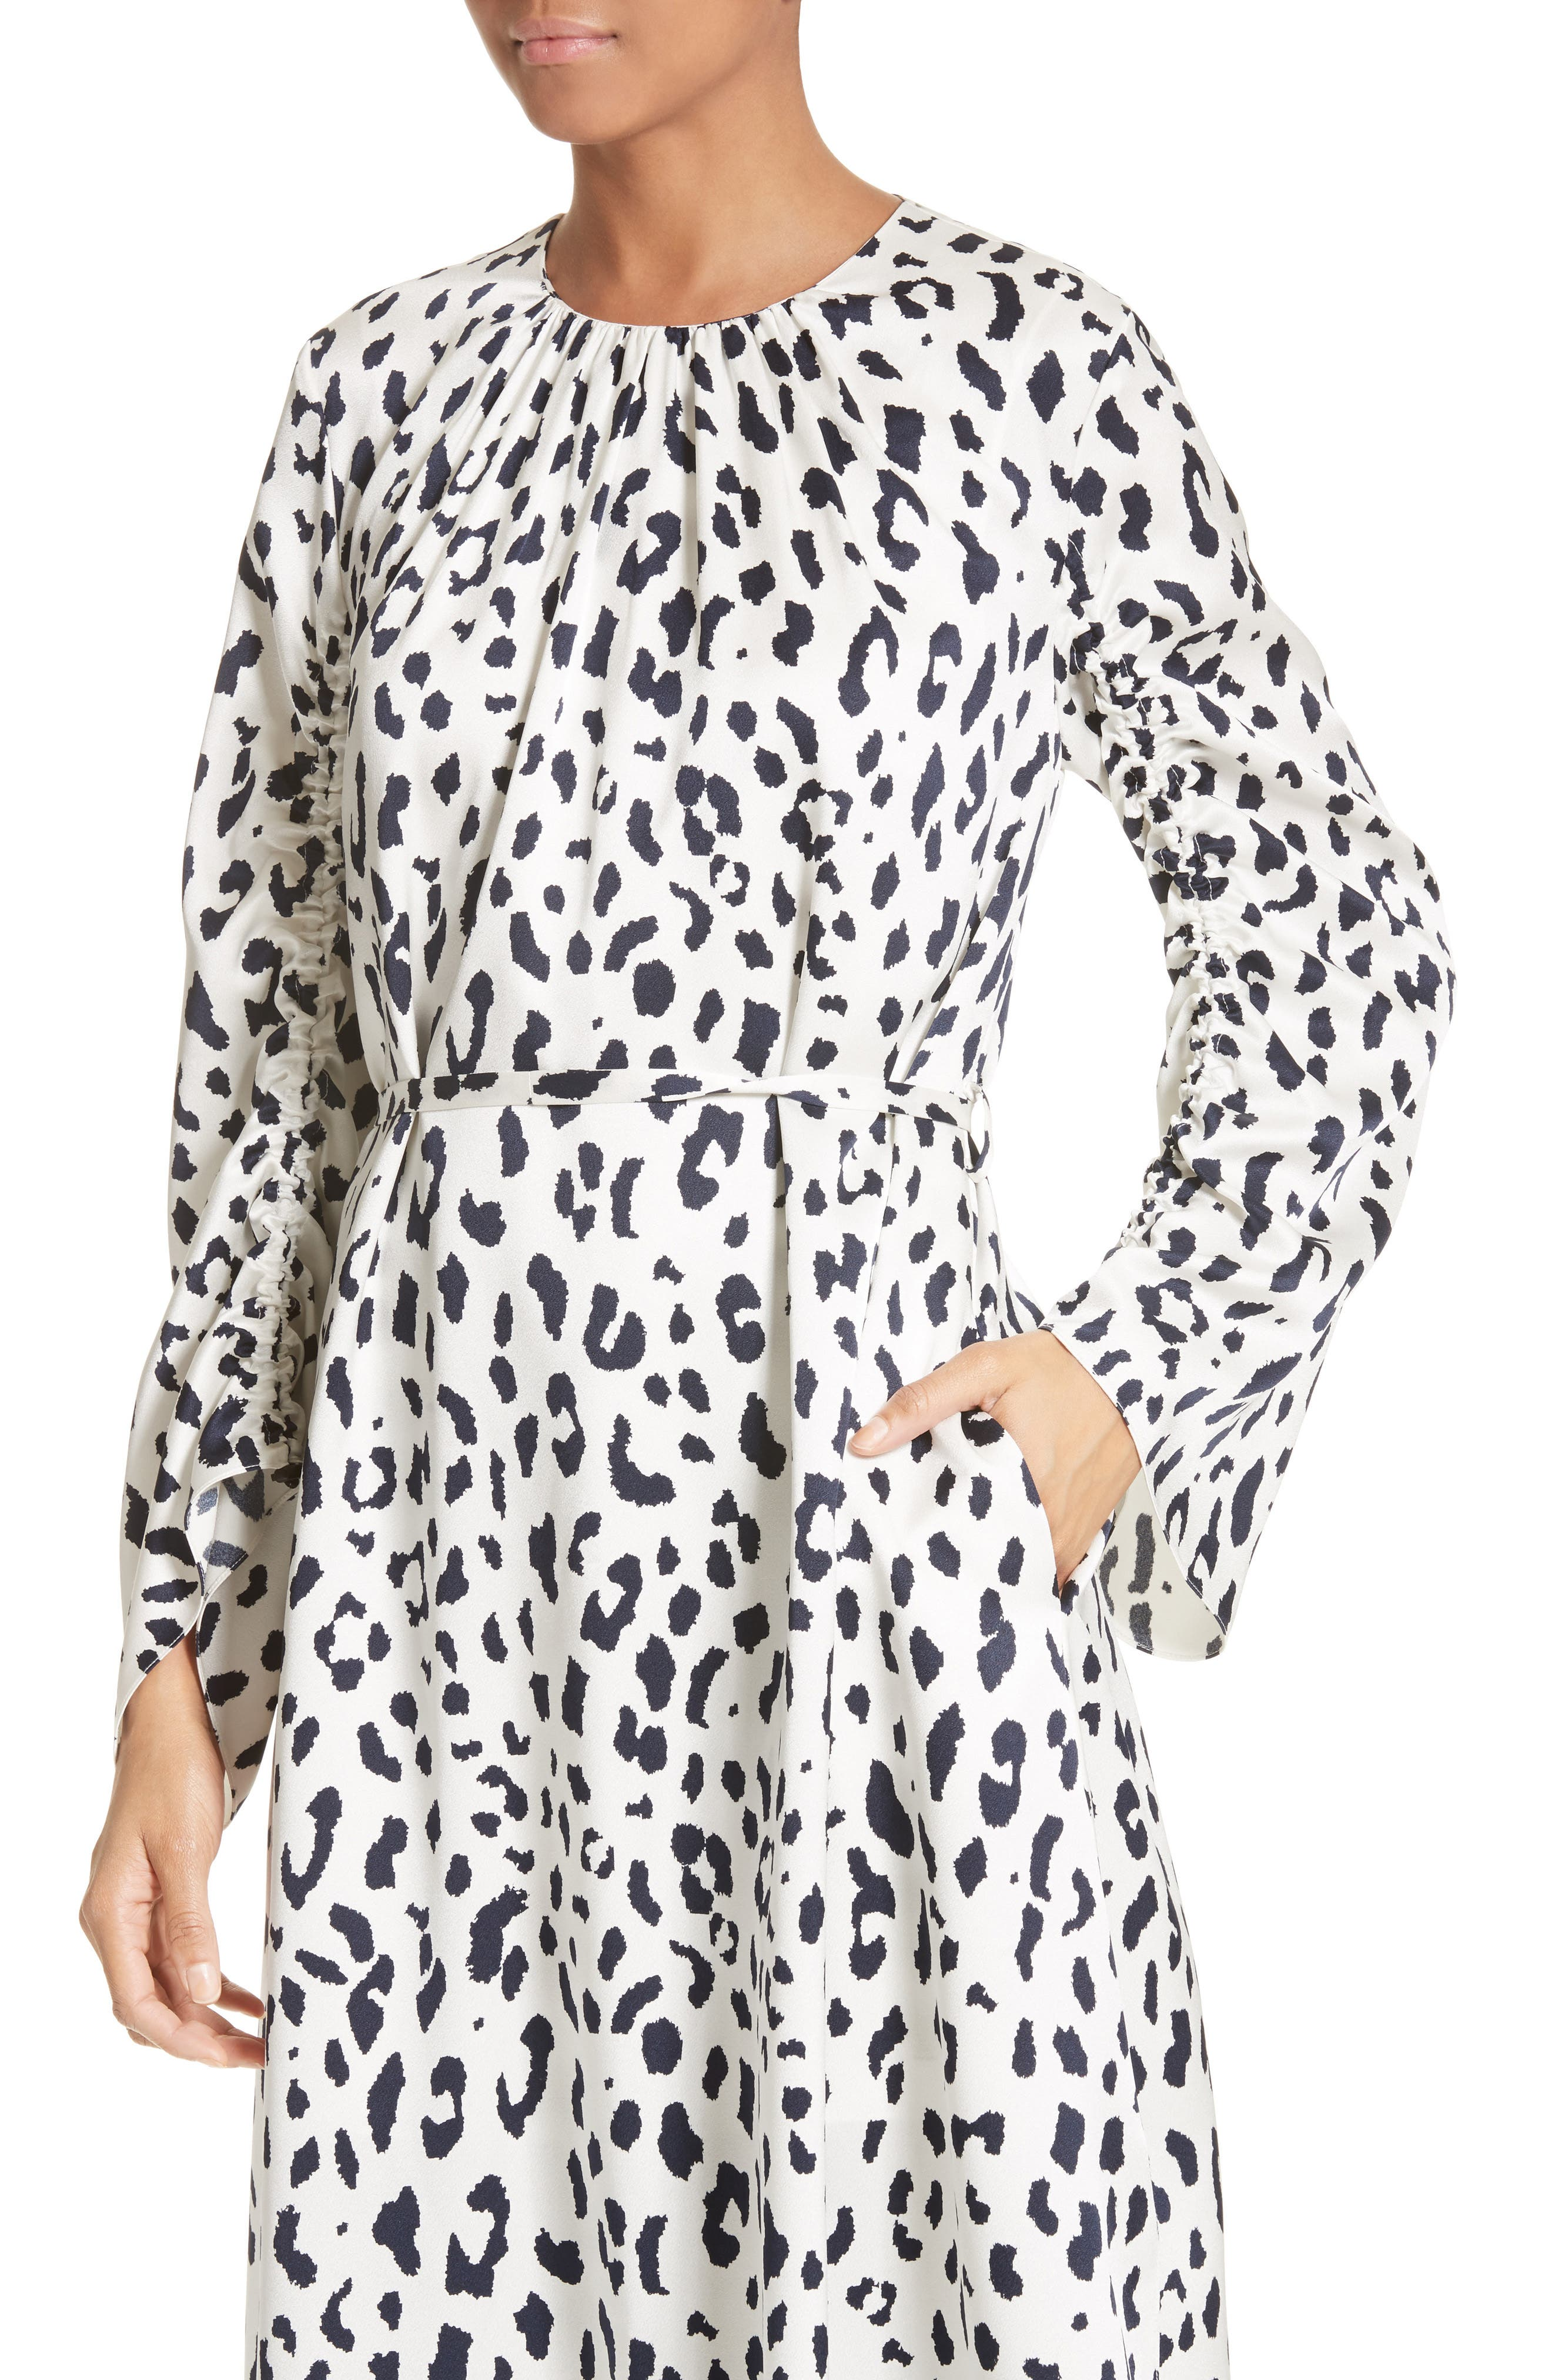 Cheetah Satin Dress,                             Alternate thumbnail 4, color,                             900